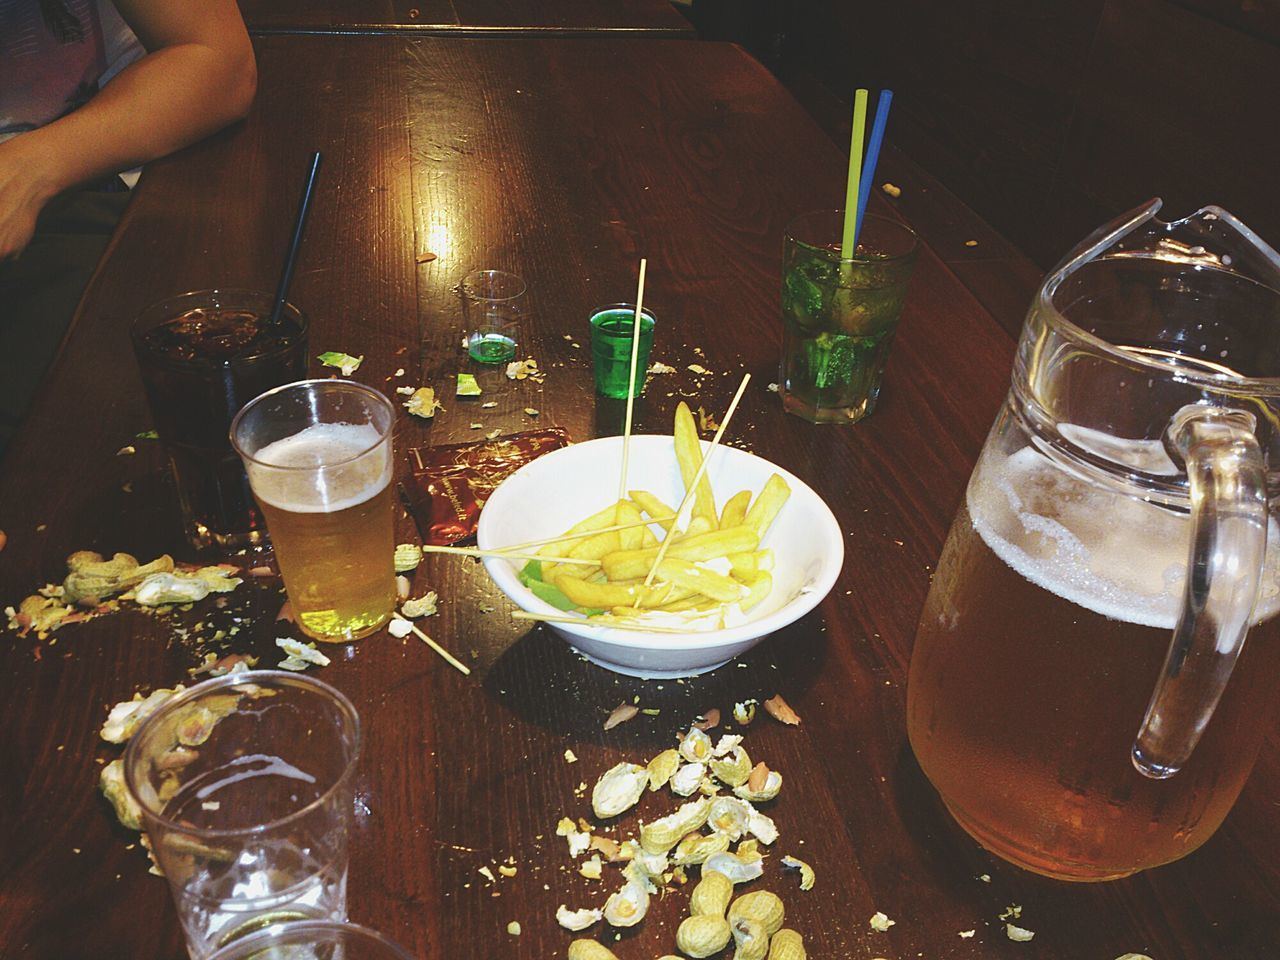 food and drink, drink, drinking glass, food, table, freshness, refreshment, human hand, real people, indoors, human body part, alcohol, beer, indulgence, drinking straw, bowl, cocktail, one person, ready-to-eat, close-up, day, people